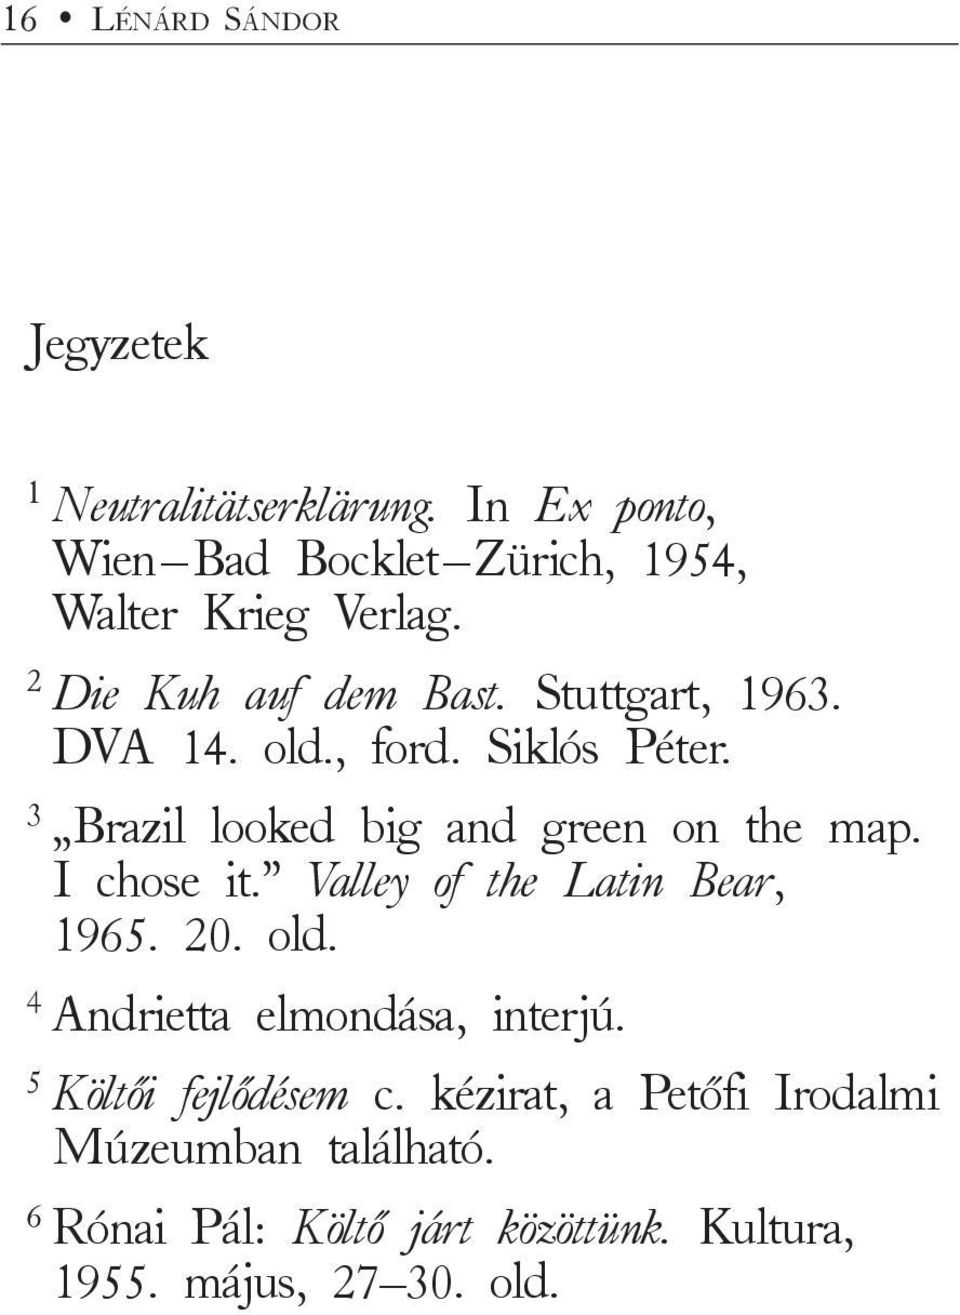 old., ford. Siklós Péter. 3 Brazil looked big and green on the map. I chose it. Valley of the Latin Bear, 1965. 20.